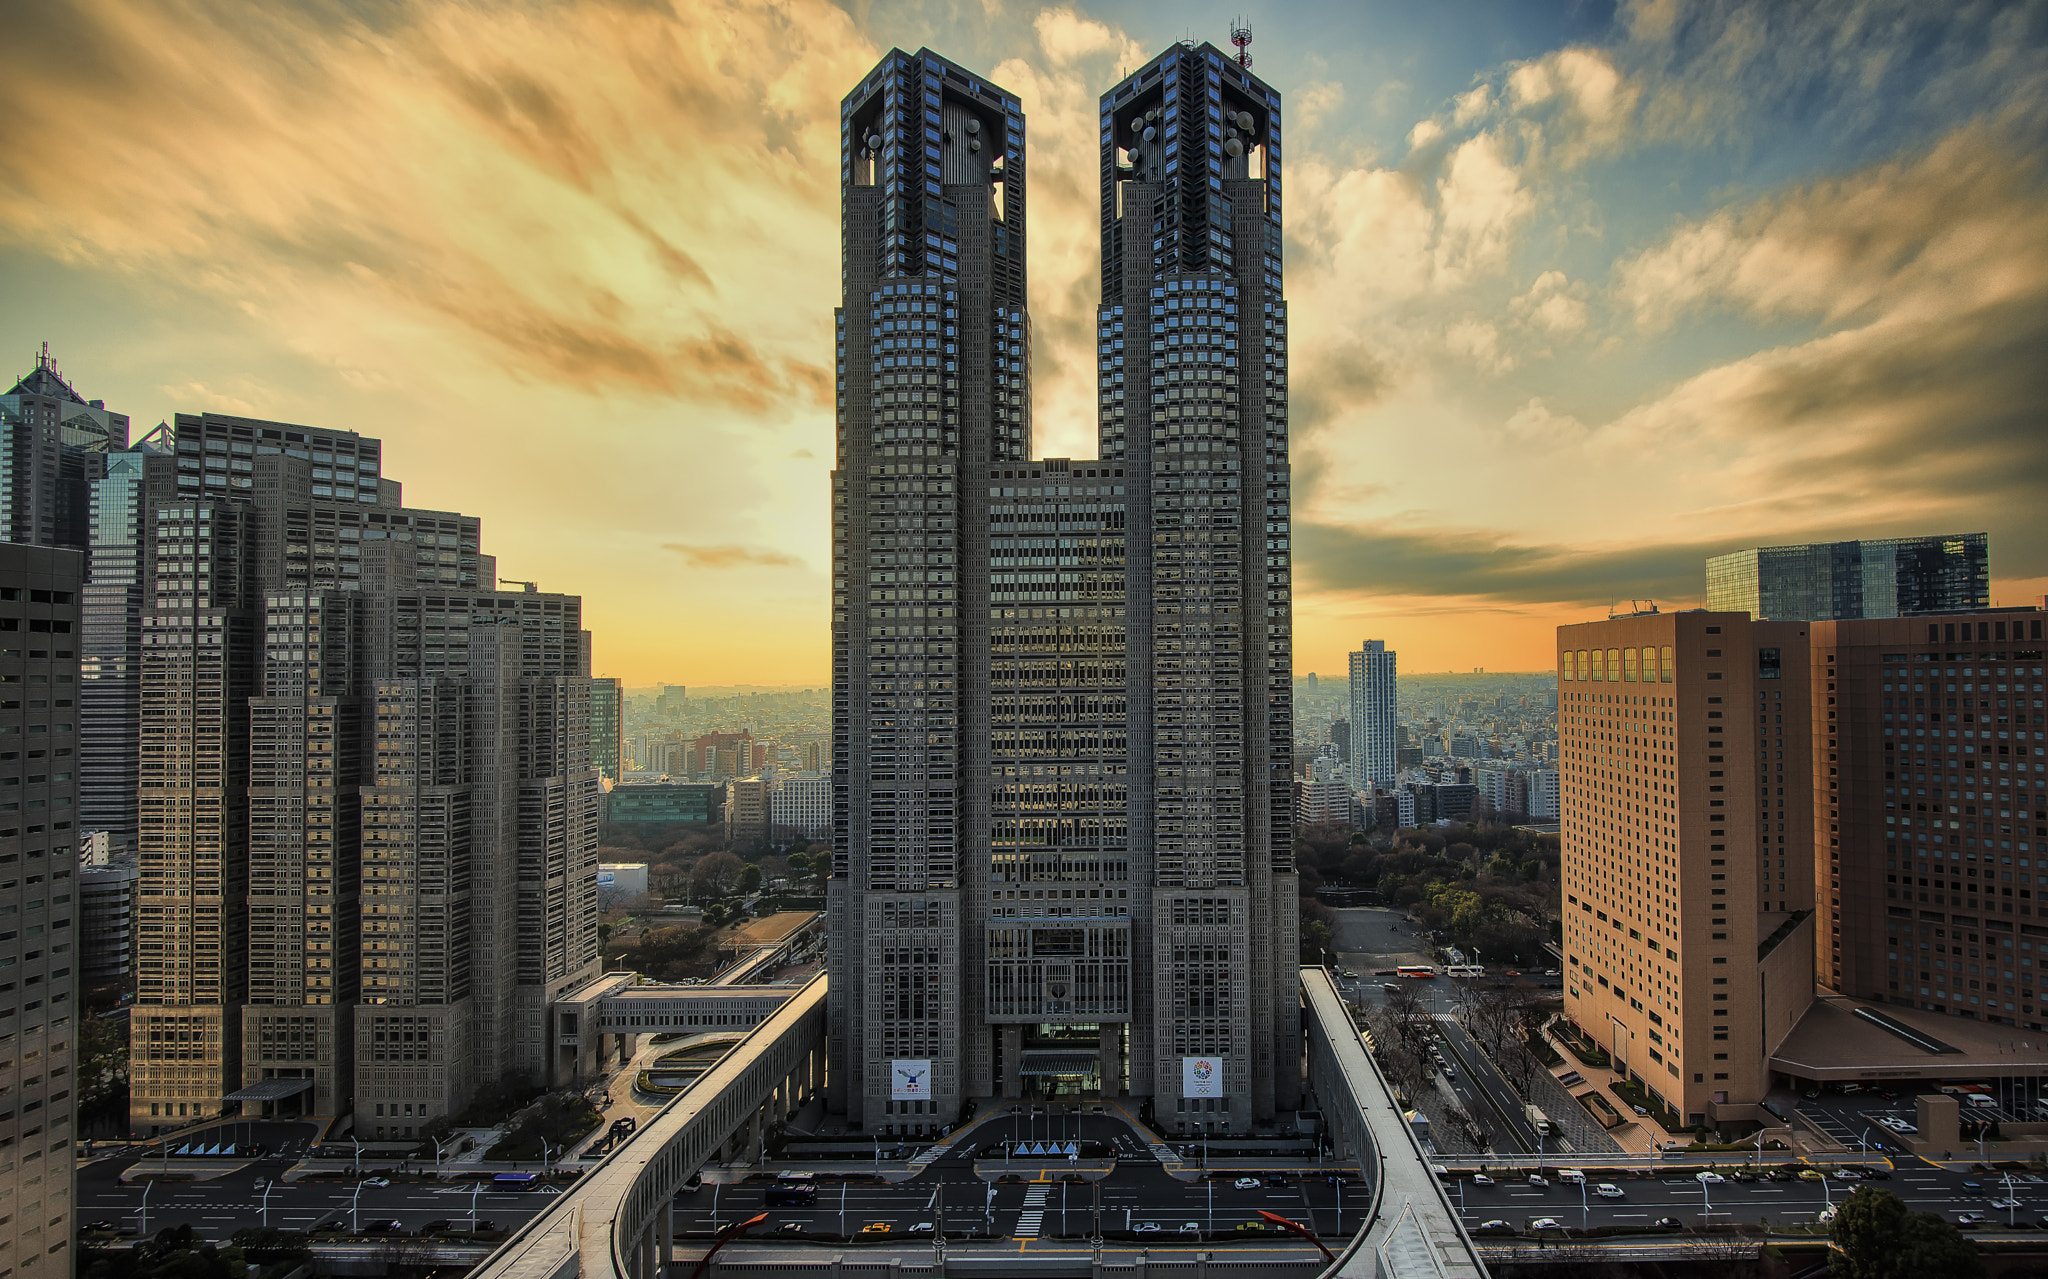 Photograph Tokyo Metropolitan Government Building by Andy Sim on 500px